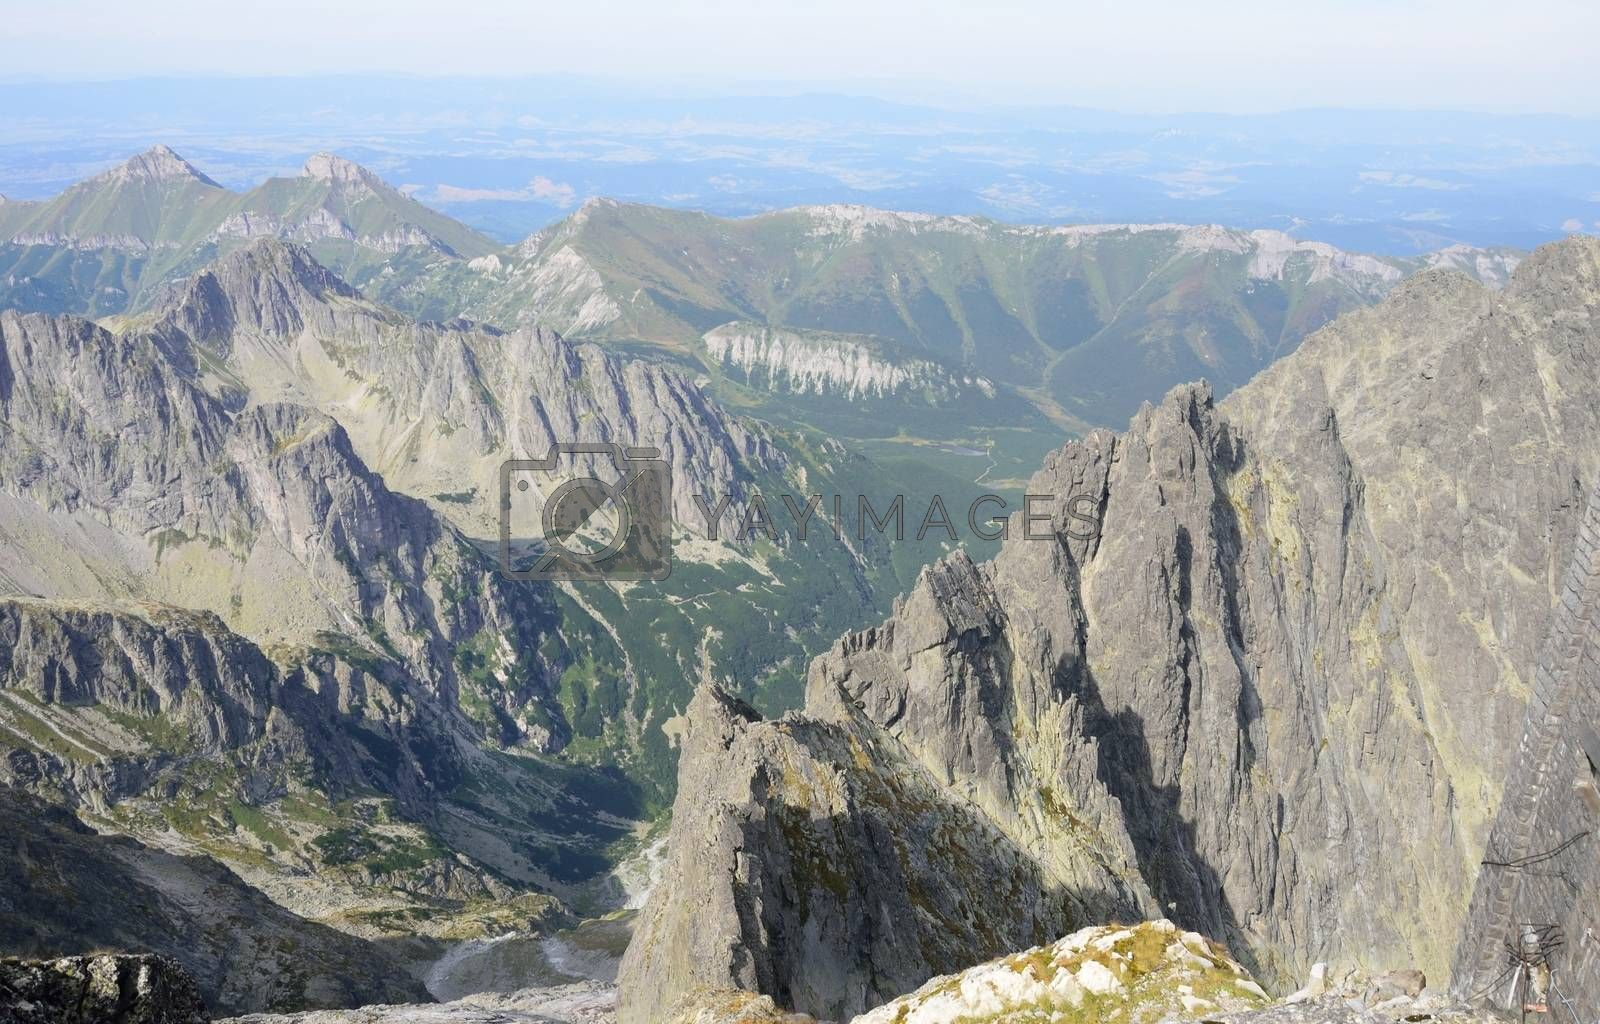 View of tatra mountains from Lomnicky stit